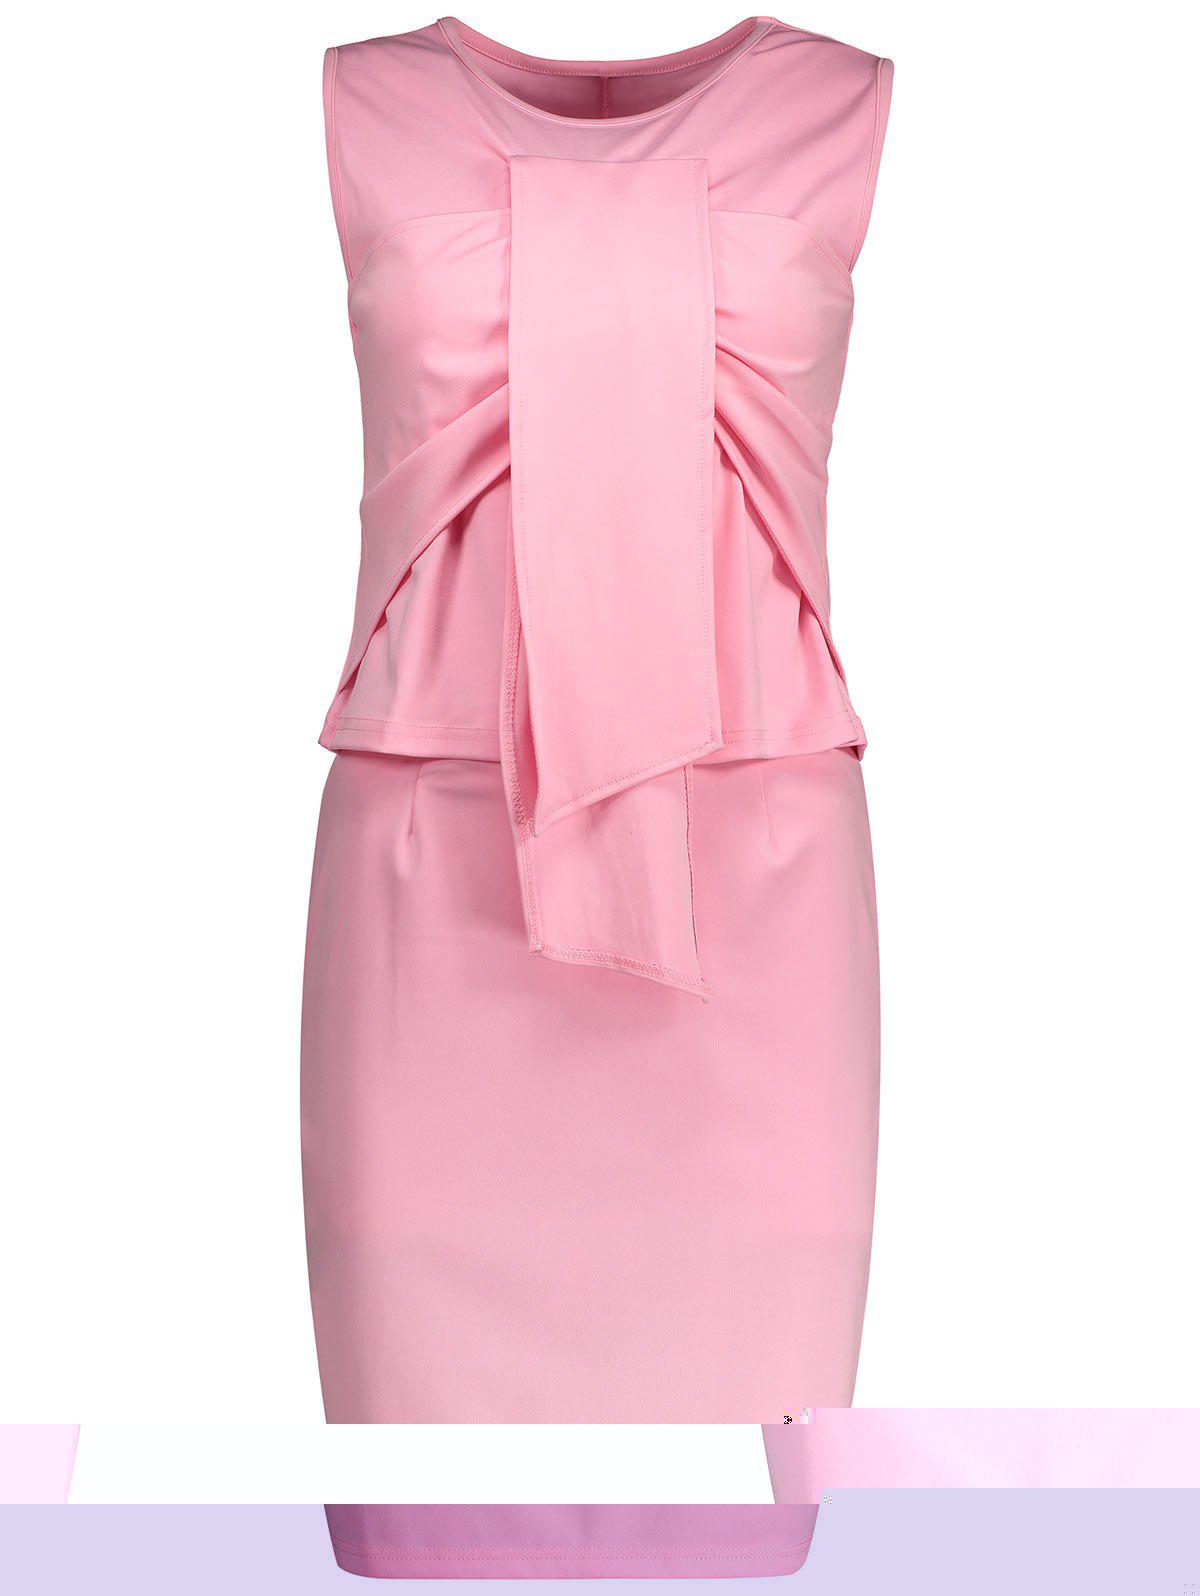 Robe en mousseline à manches courtes sans gaine - Rose M